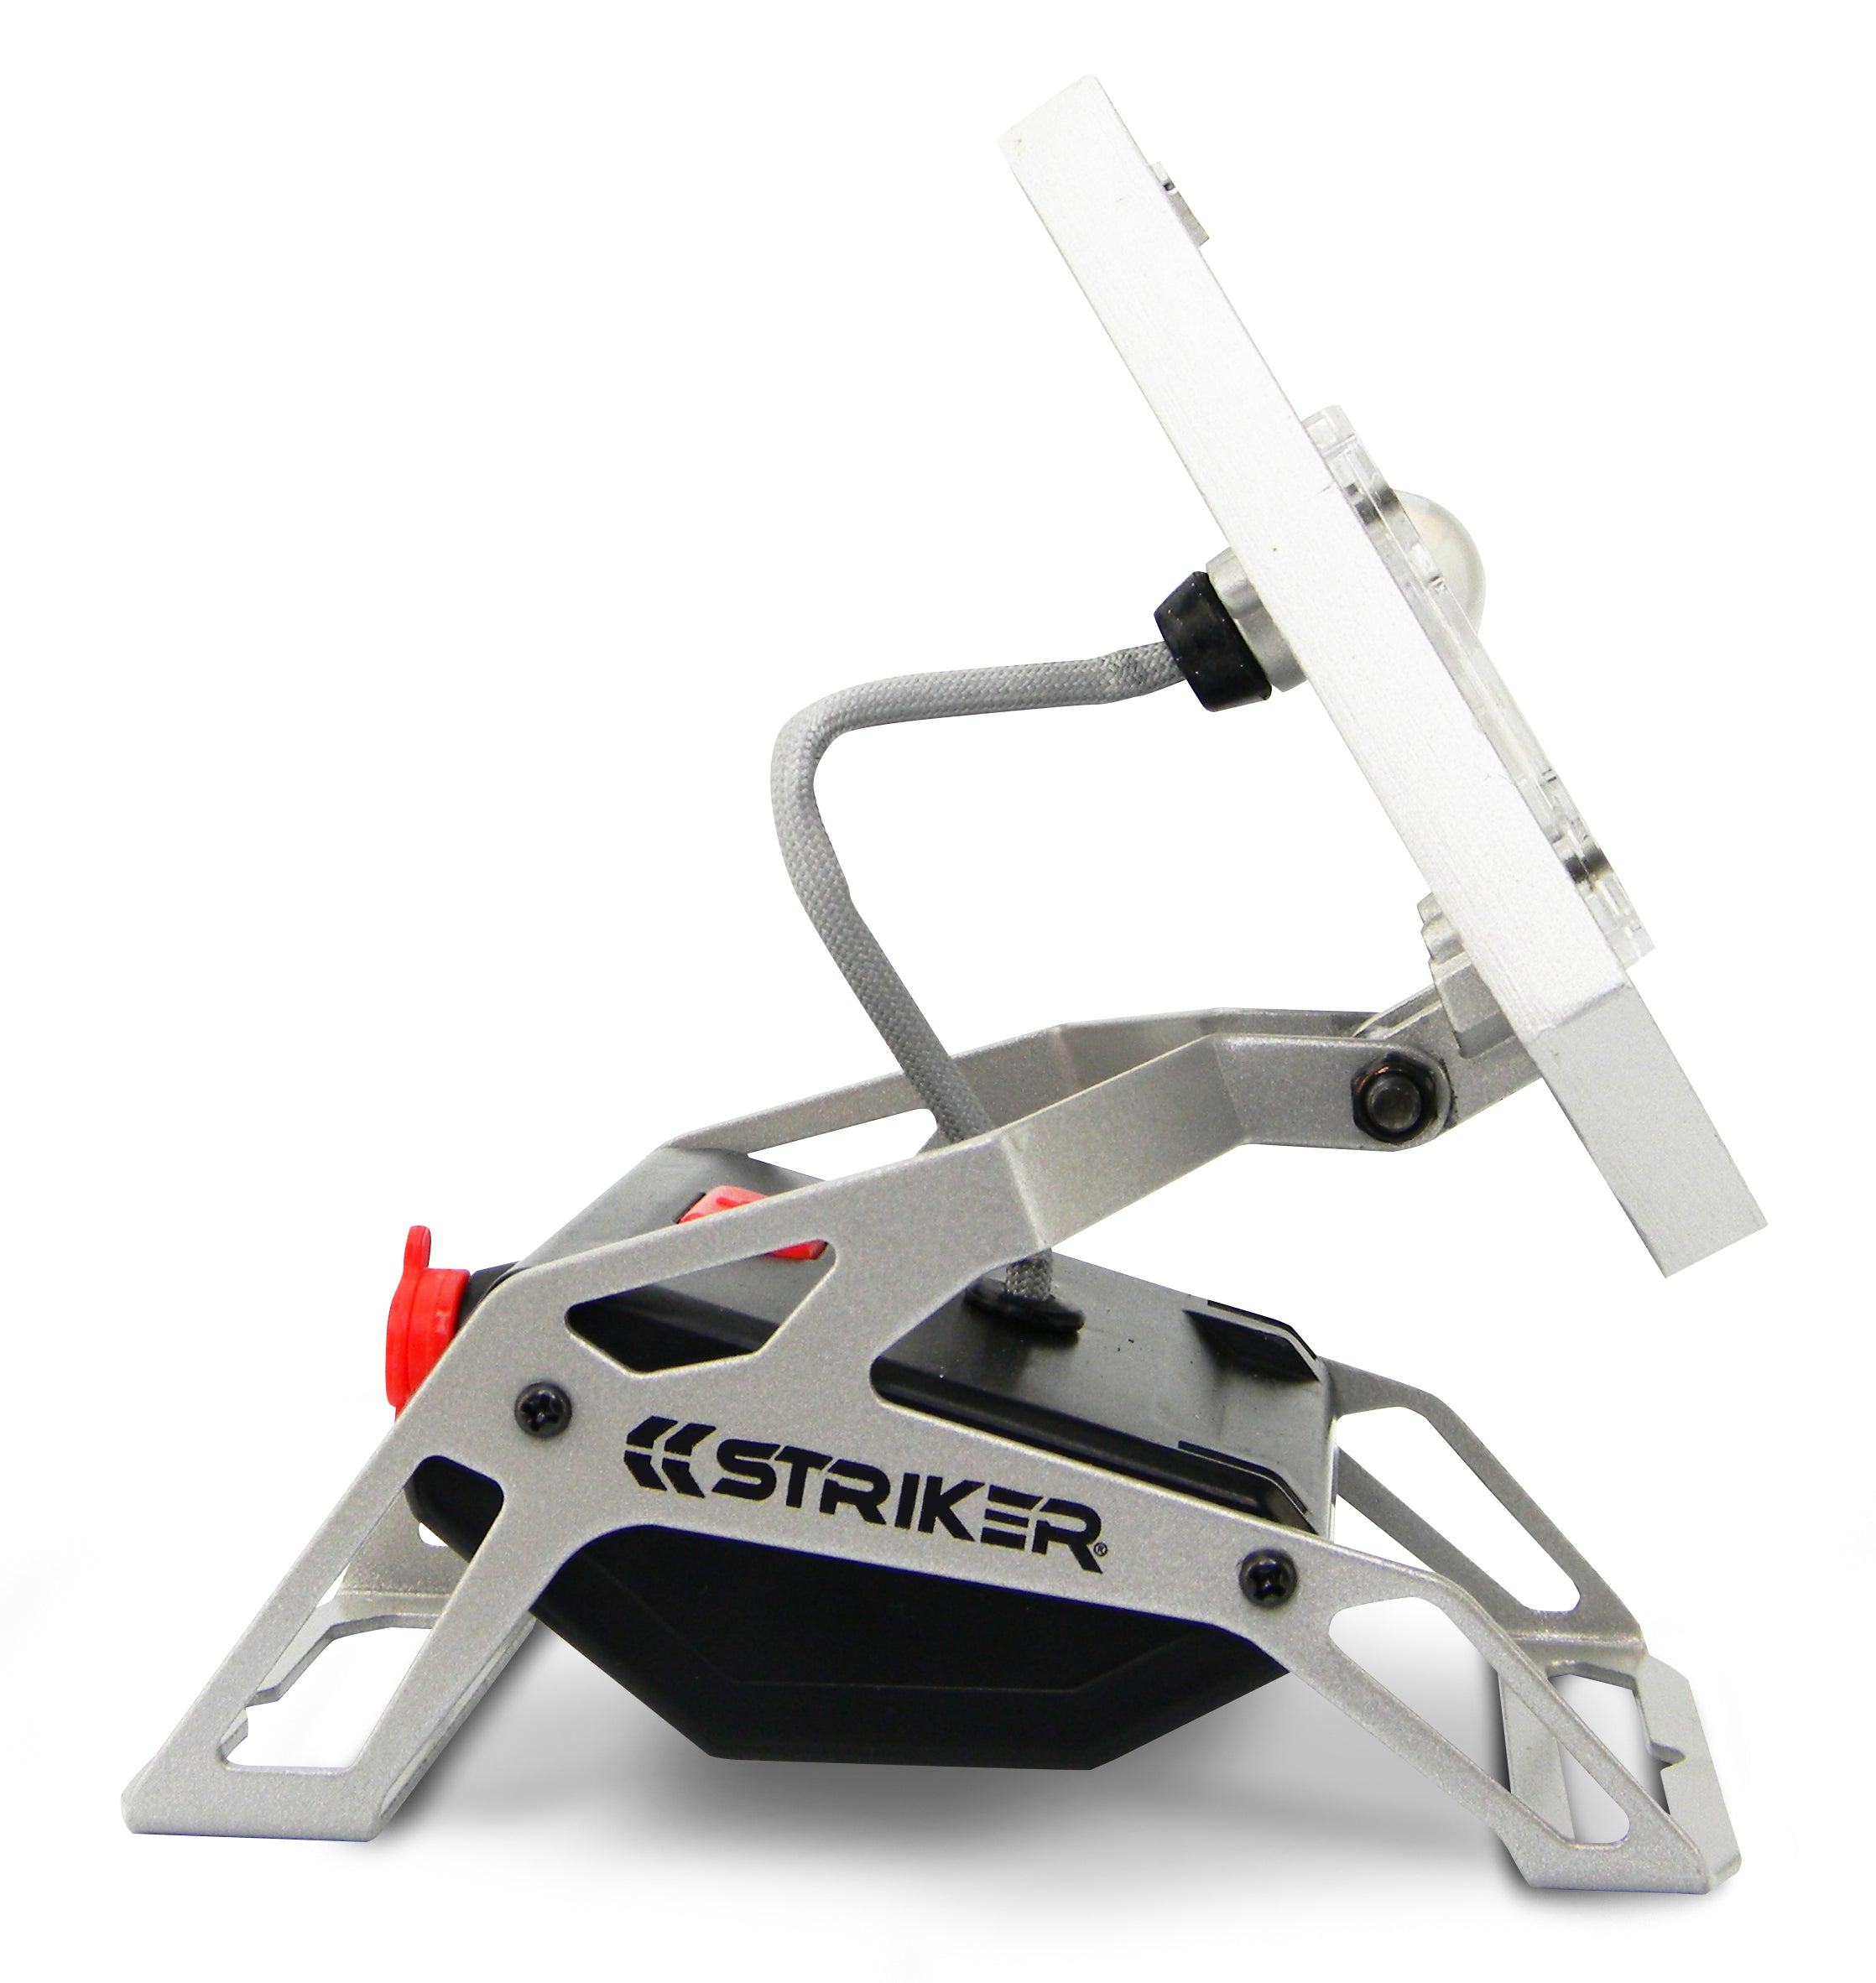 The Striker ROVER Mobile Task Light